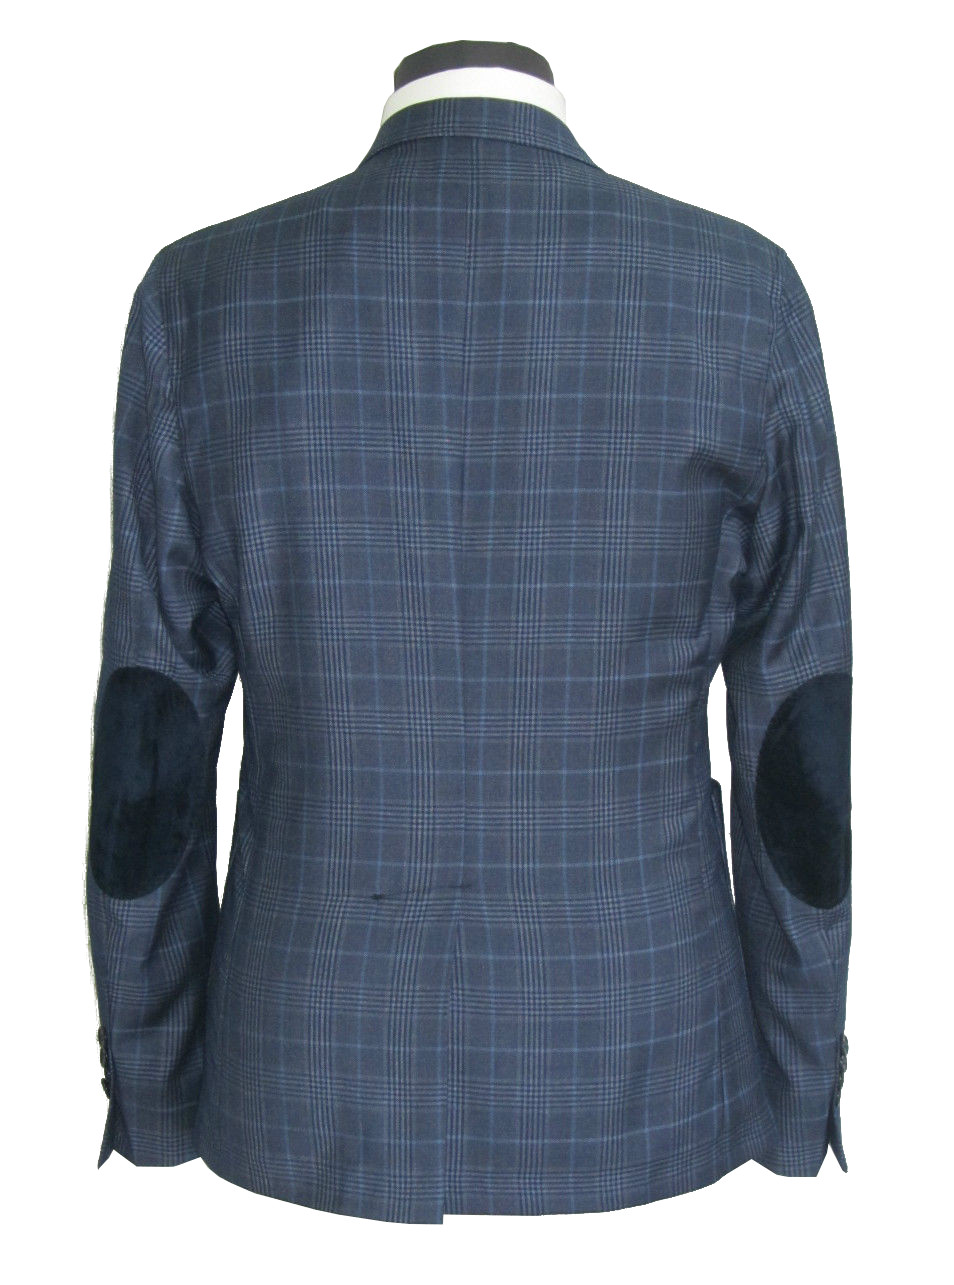 c5171ac268 giacca uomo slim sartoriale con toppe lana stretch made in italy ...